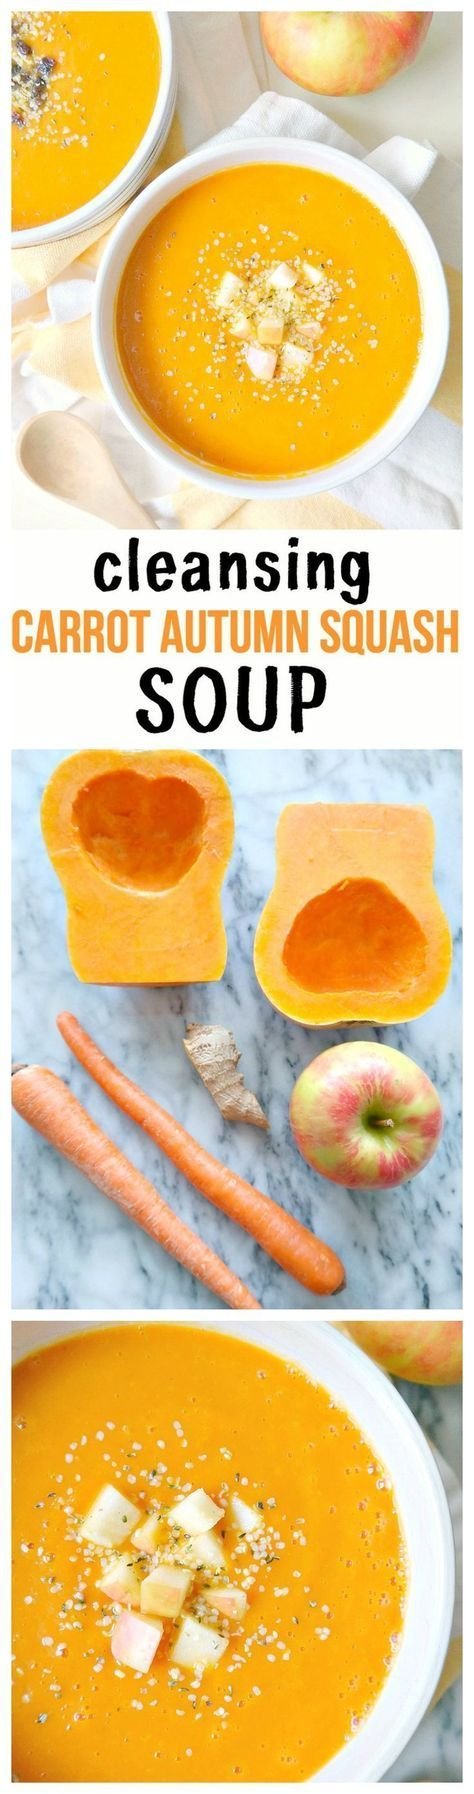 Cleansing Carrot Autumn Squash Soup - vegan, gluten-free, oil-free, low-fat and��